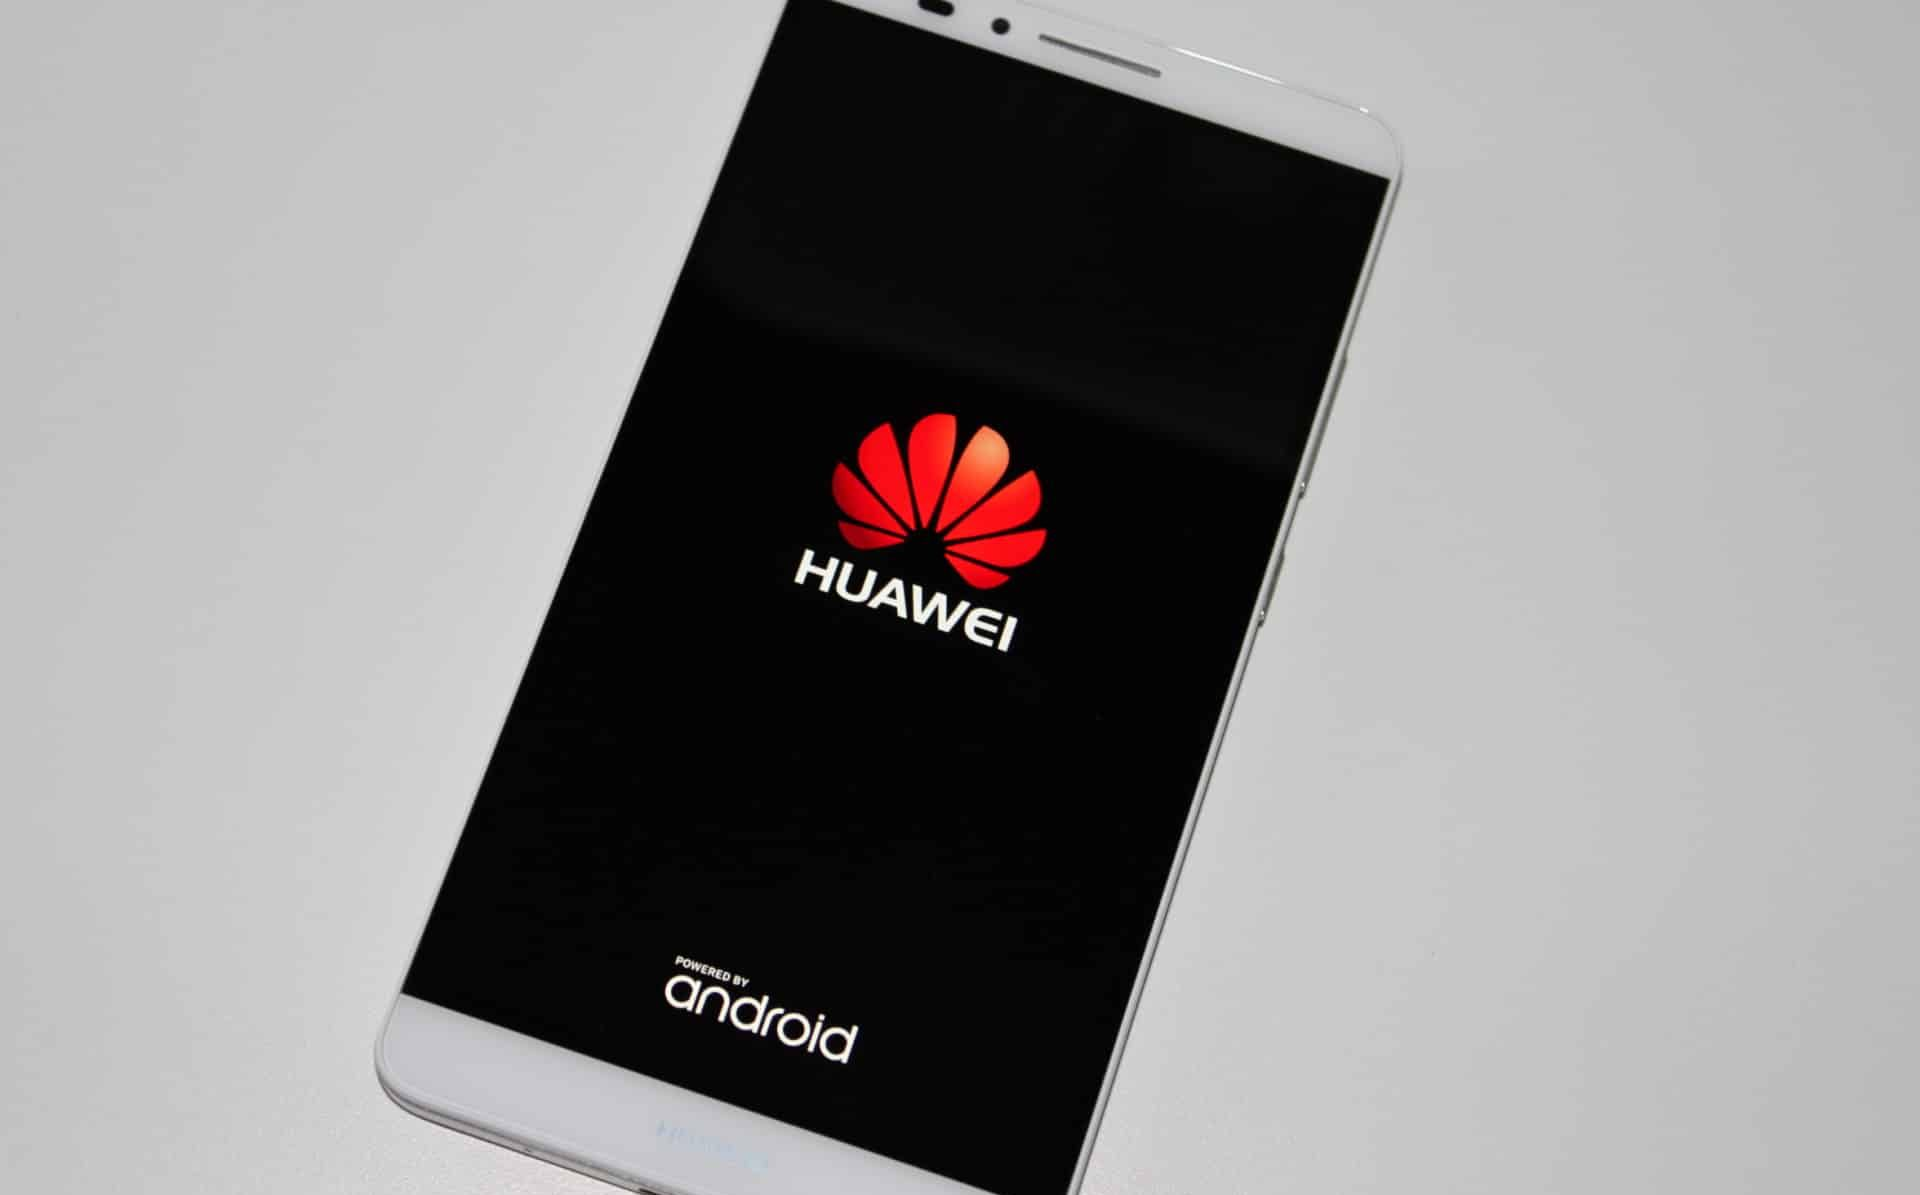 "Huawei Android ""width ="" 1920 ""height ="" 1195 ""srcset ="" ""srcset ="" https://www.leak.es/wp-content/uploads/2019/05/AH-Huawei-Logo-Android-Mate-7 -6 -e1558360840130.jpg 1920w, https://www.leak.es/wp-content/uploads/2019/05/AH-Huawei-Logo-Android-Mate-7 -6 -e1558360840130-95x59.jpg 95w, https://www.leak.es/wp-content/uploads/2019/05/AH-Huawei-Logo-Android-Mate-7 -6 -e1558360840130-350x218.jpg 350w, https://www.leak.es/wp-content/uploads/2019/05/AH-Huawei-Logo-Android-Mate-7 -6 -e1558360840130-768x478.jpg 768w, https://www.leak.es/wp-content/uploads/2019/05/AH-Huawei-Logo-Android-Mate-7 -6 -e1558360840130-1200x747.jpg 1200w, https://www.leak.es/wp-content/uploads/2019/05/AH-Huawei-Logo-Android-Mate-7 -6 -e1558360840130-1068x665.jpg 1068w ""size ="" (max-width: 1920px) 100vw, 1920px"